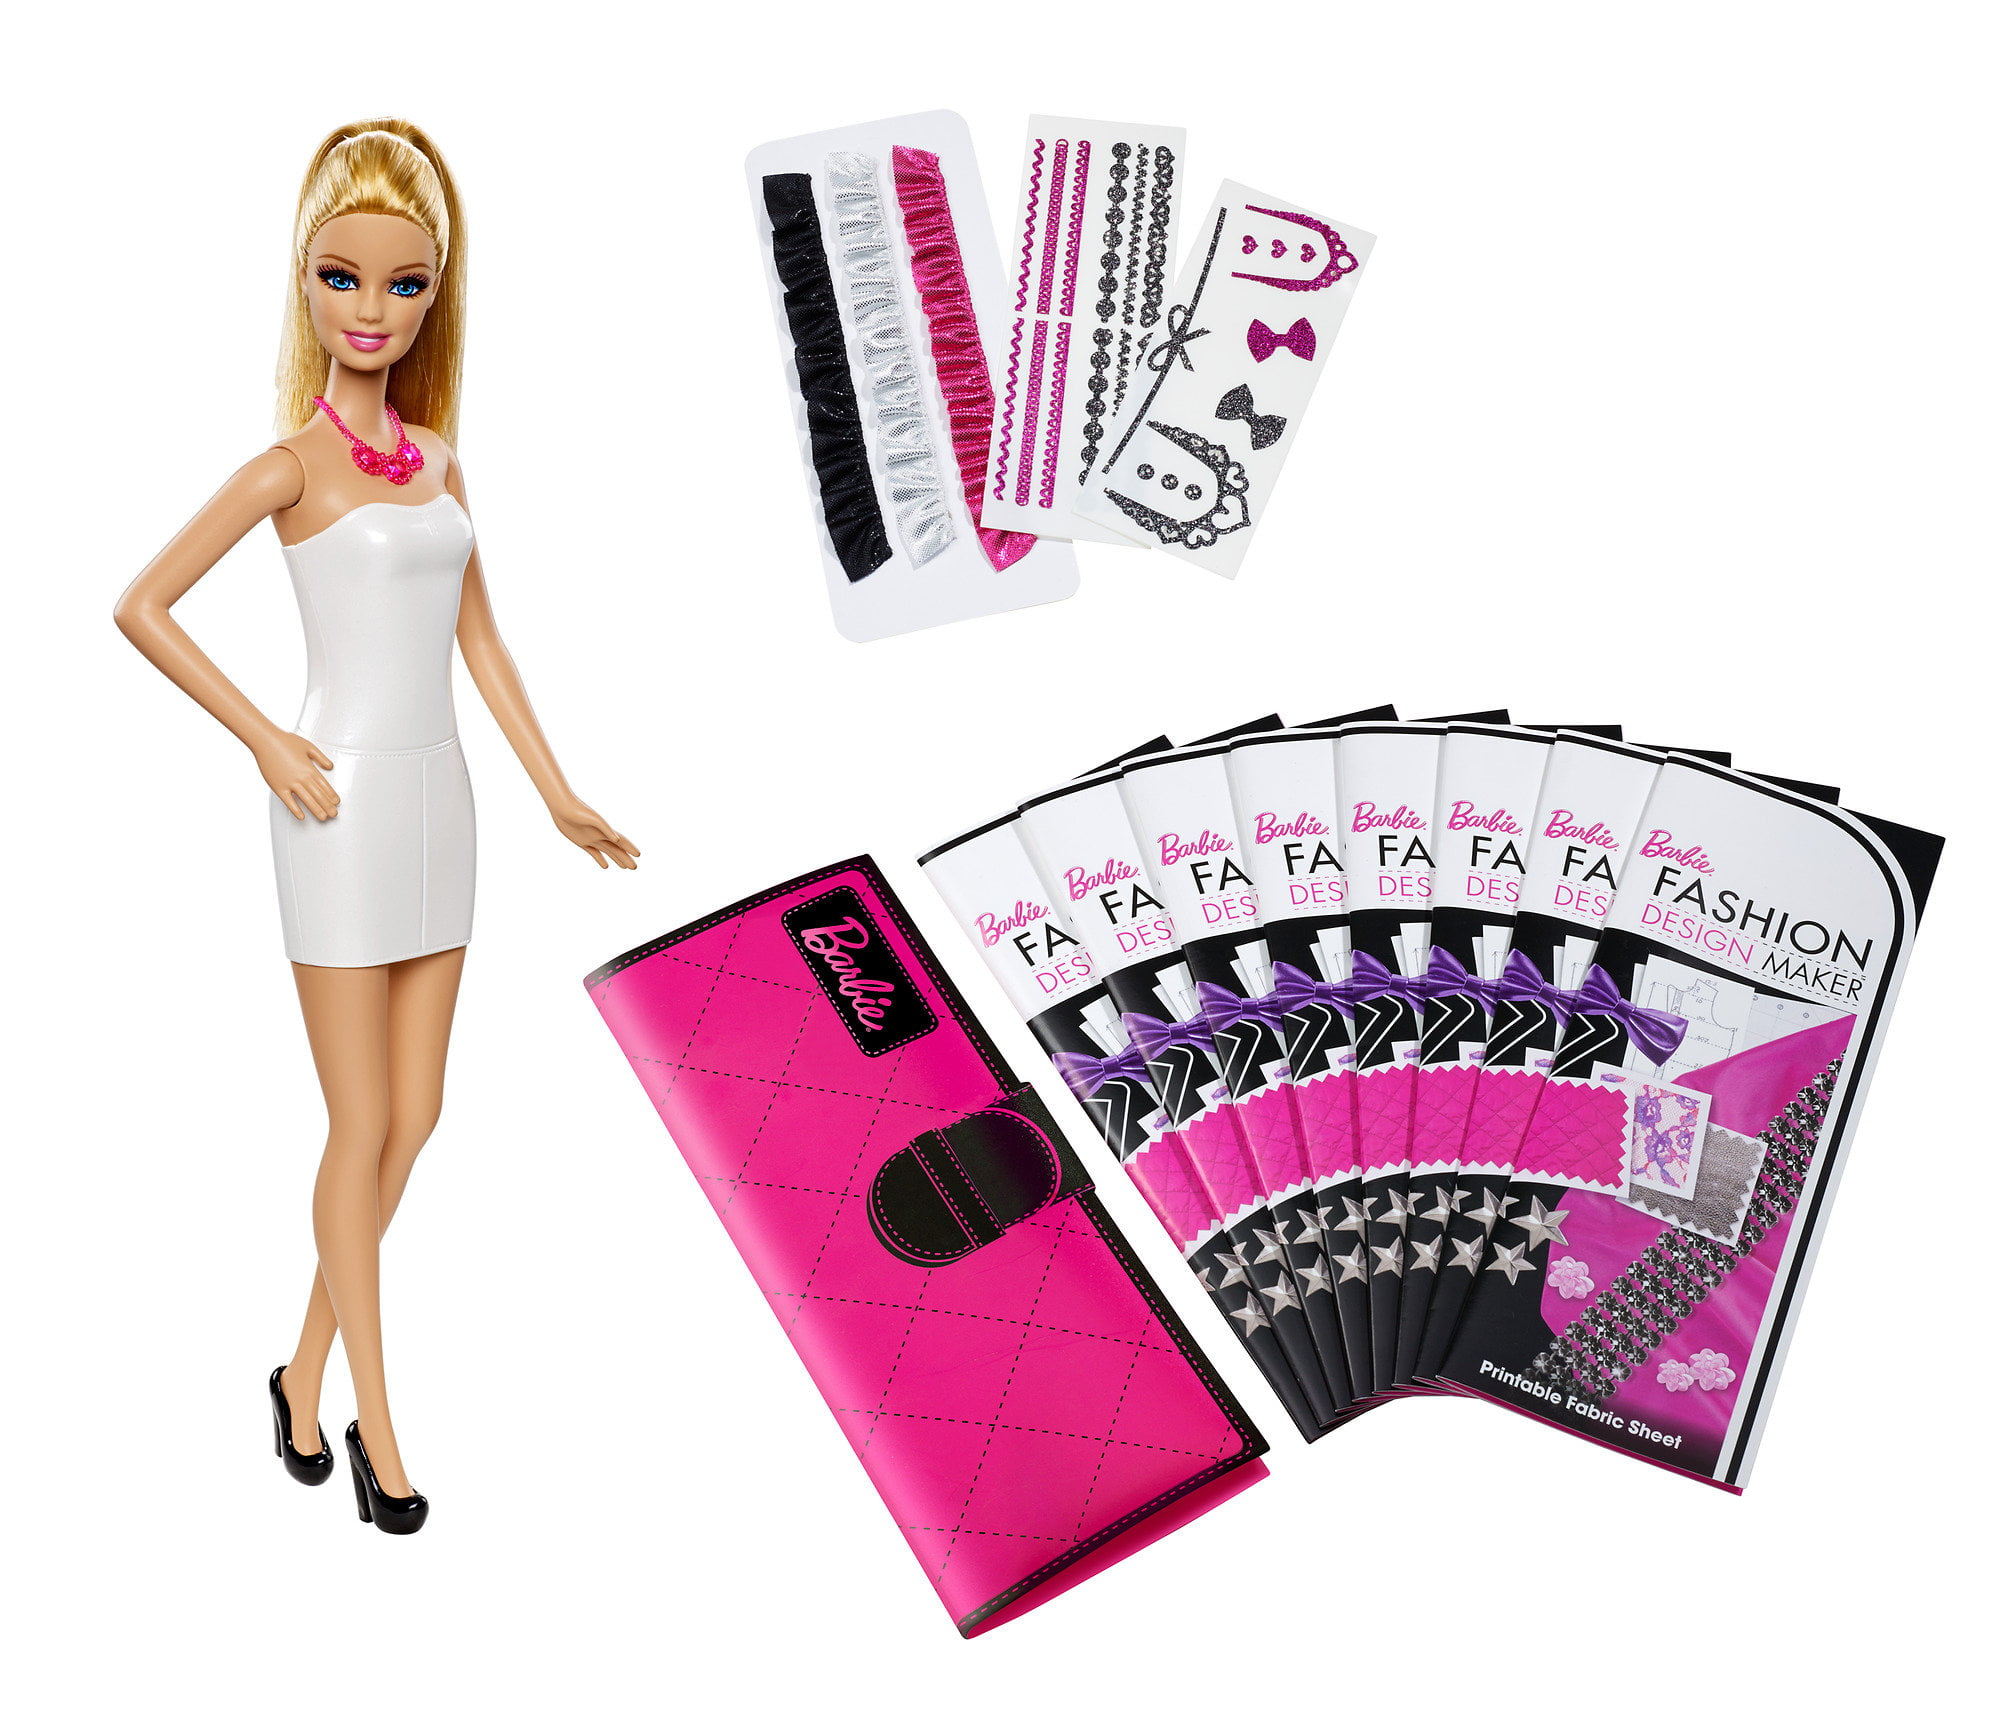 Barbie Fashion Design Maker Doll Walmart Com Walmart Com